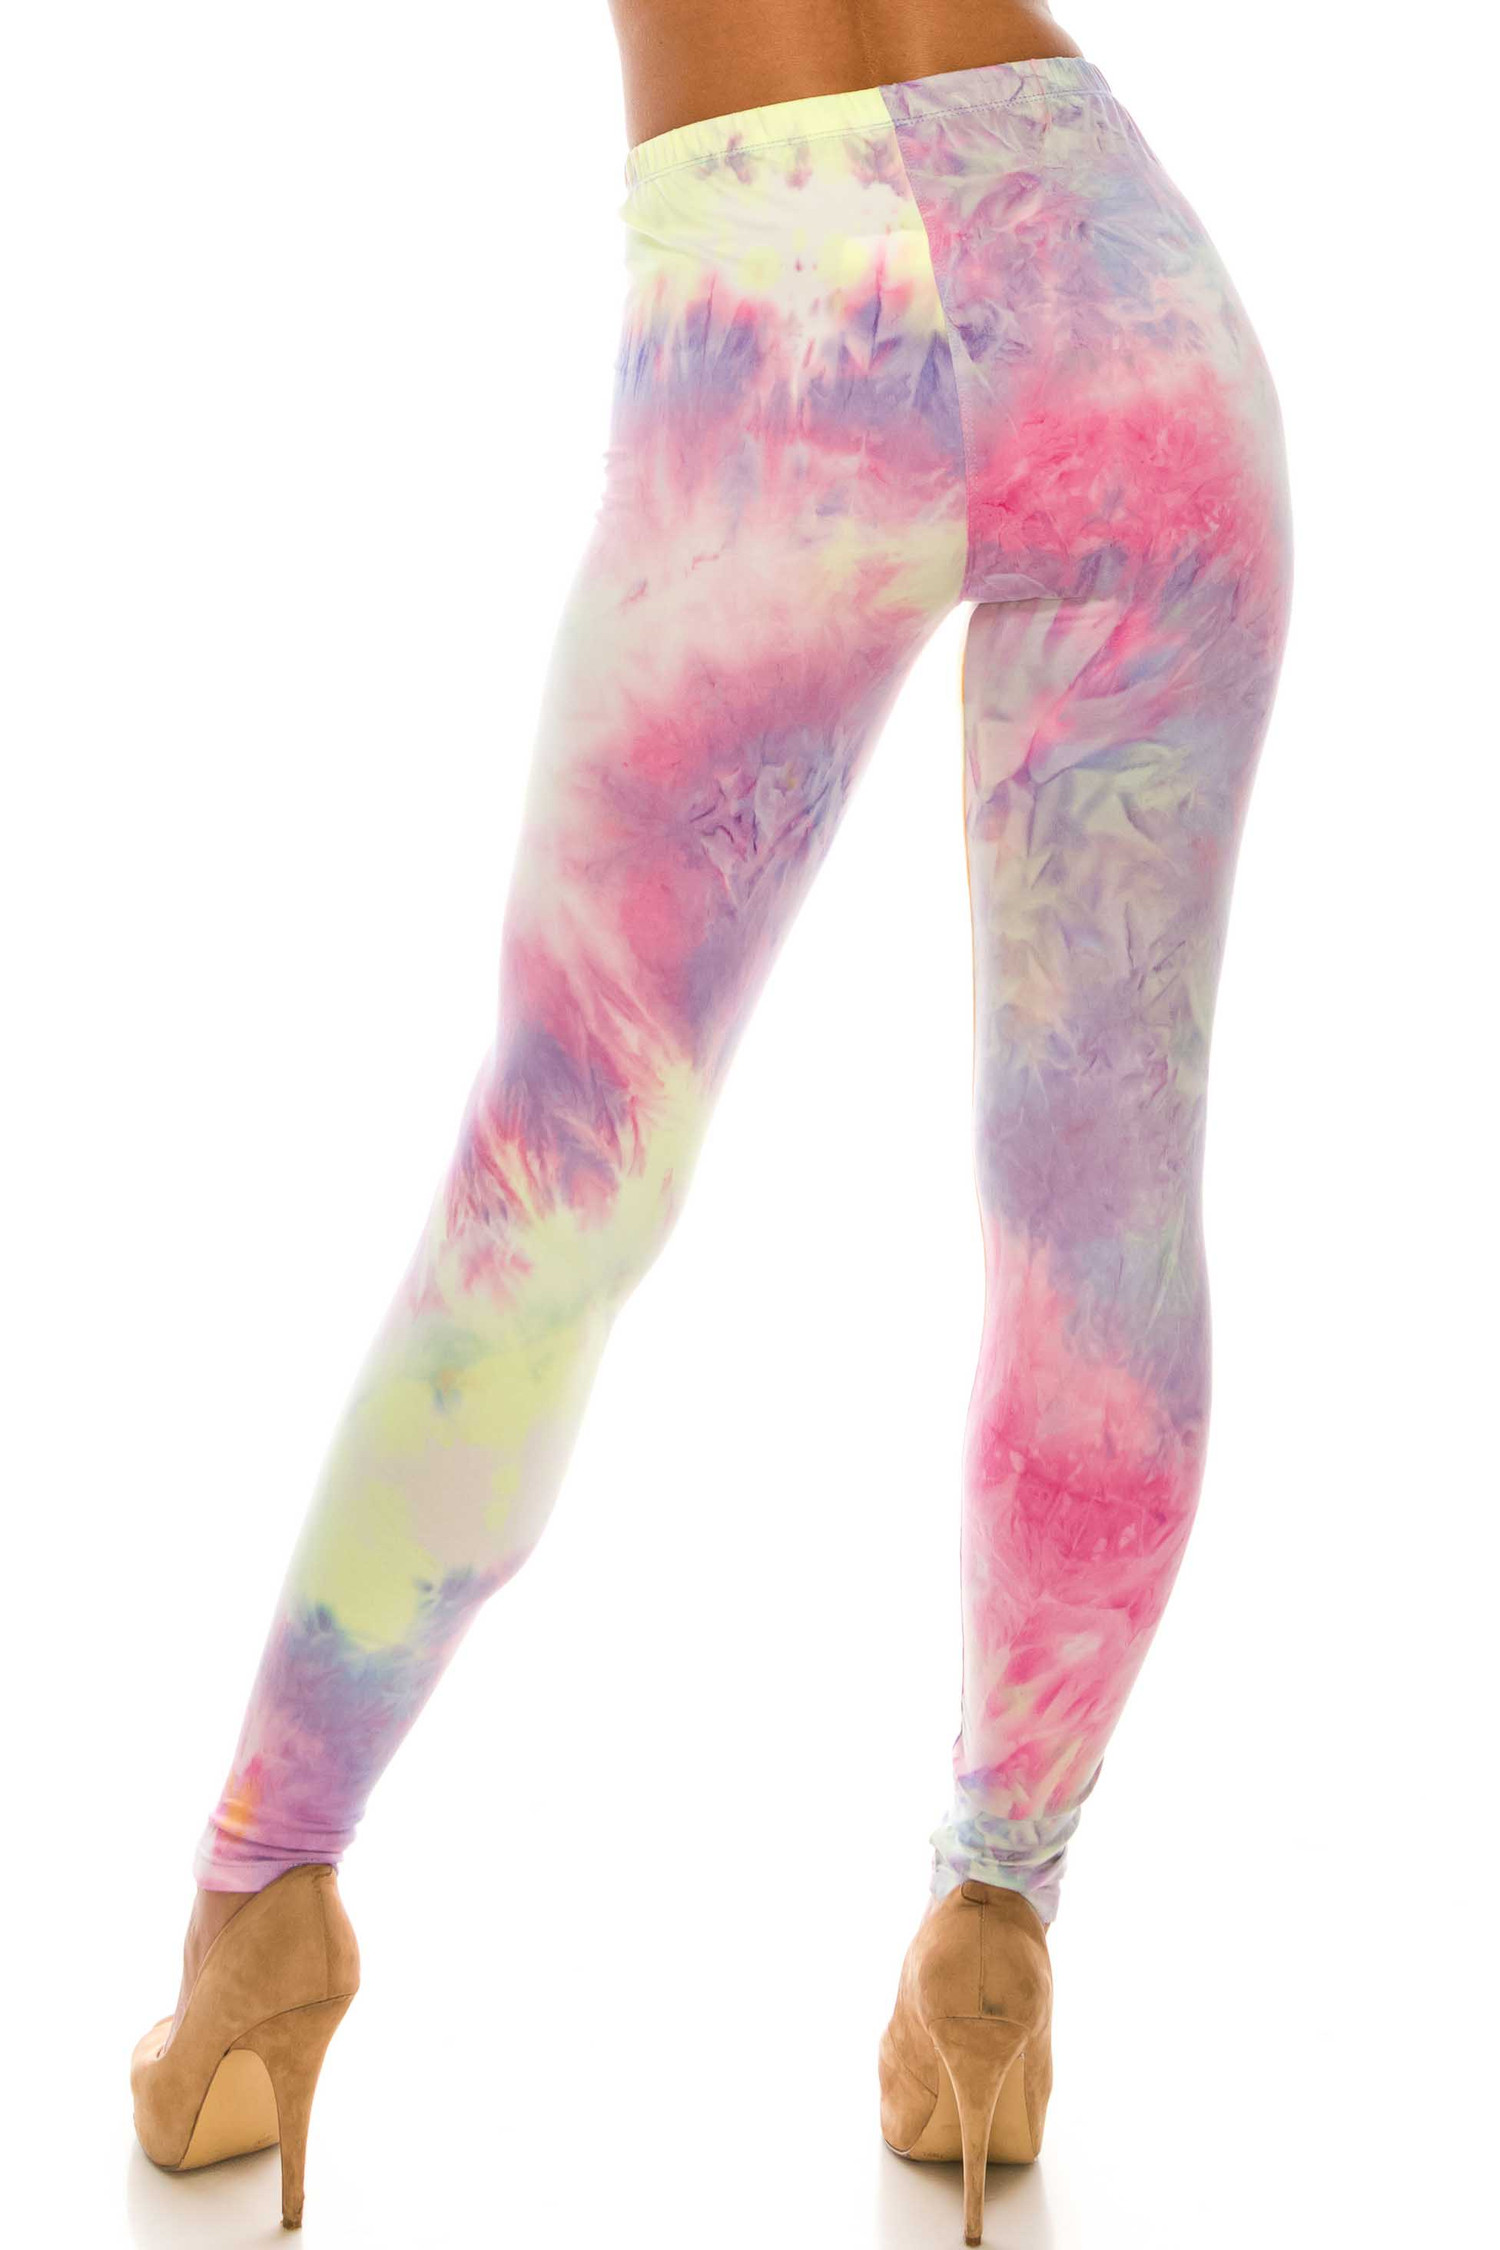 Buttery Soft Multi-Color Pastel Tie Dye Leggings